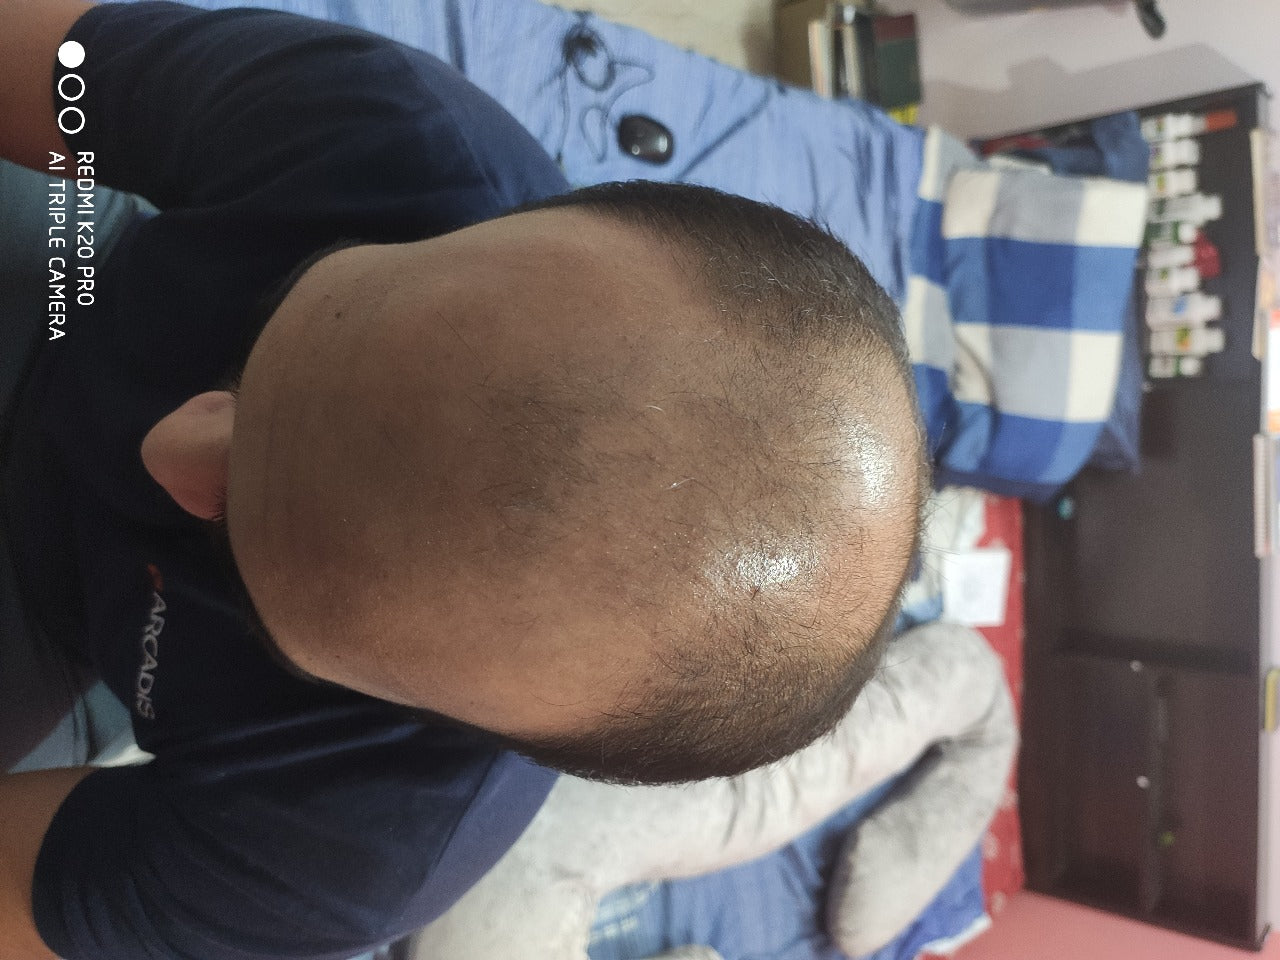 Stage 5 male pattern hair loss